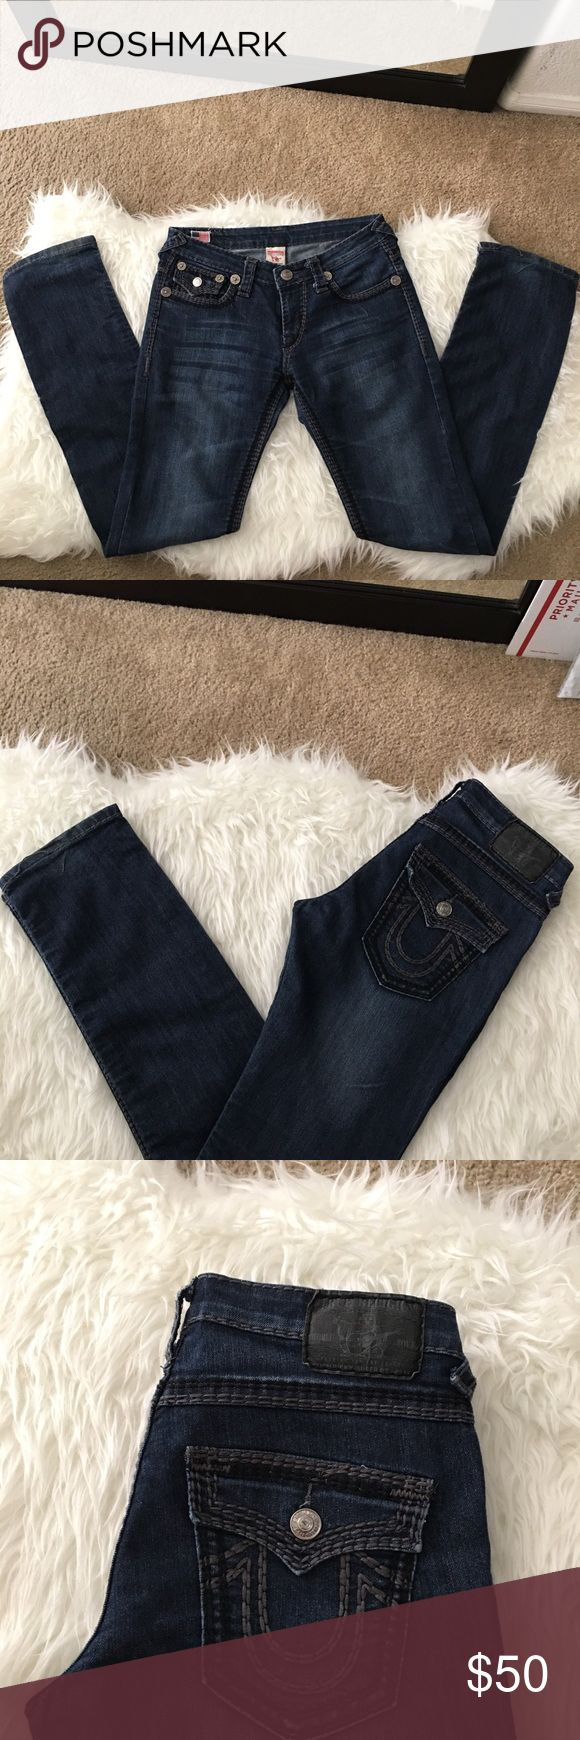 """FLASH SALE[True Religion] Ricky Jeans True Religion Ricky Super Seat OT Dark Wash Straight Leg Denim Jeans. Black & Gray Large Stitching. Size 29 33"""" inseam. A little wear on back bottom of jeans( see last pic ) otherwise in perfect condition** True Religion Jeans Straight"""